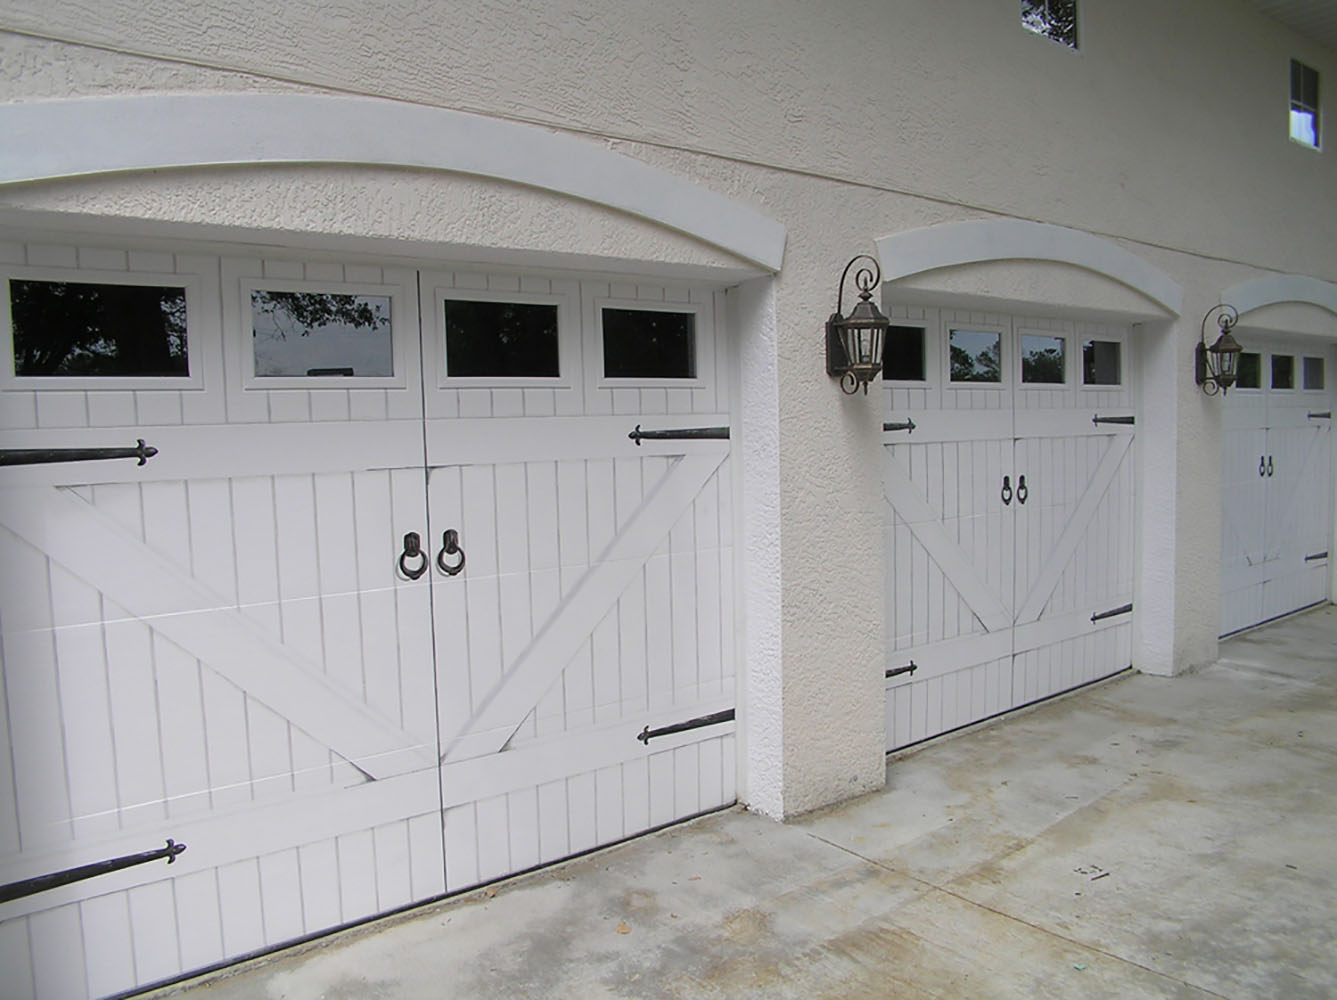 1000 #6C675F Garage Doors Windows Doors Columns And More picture/photo Overhead Doors Tampa 35791337